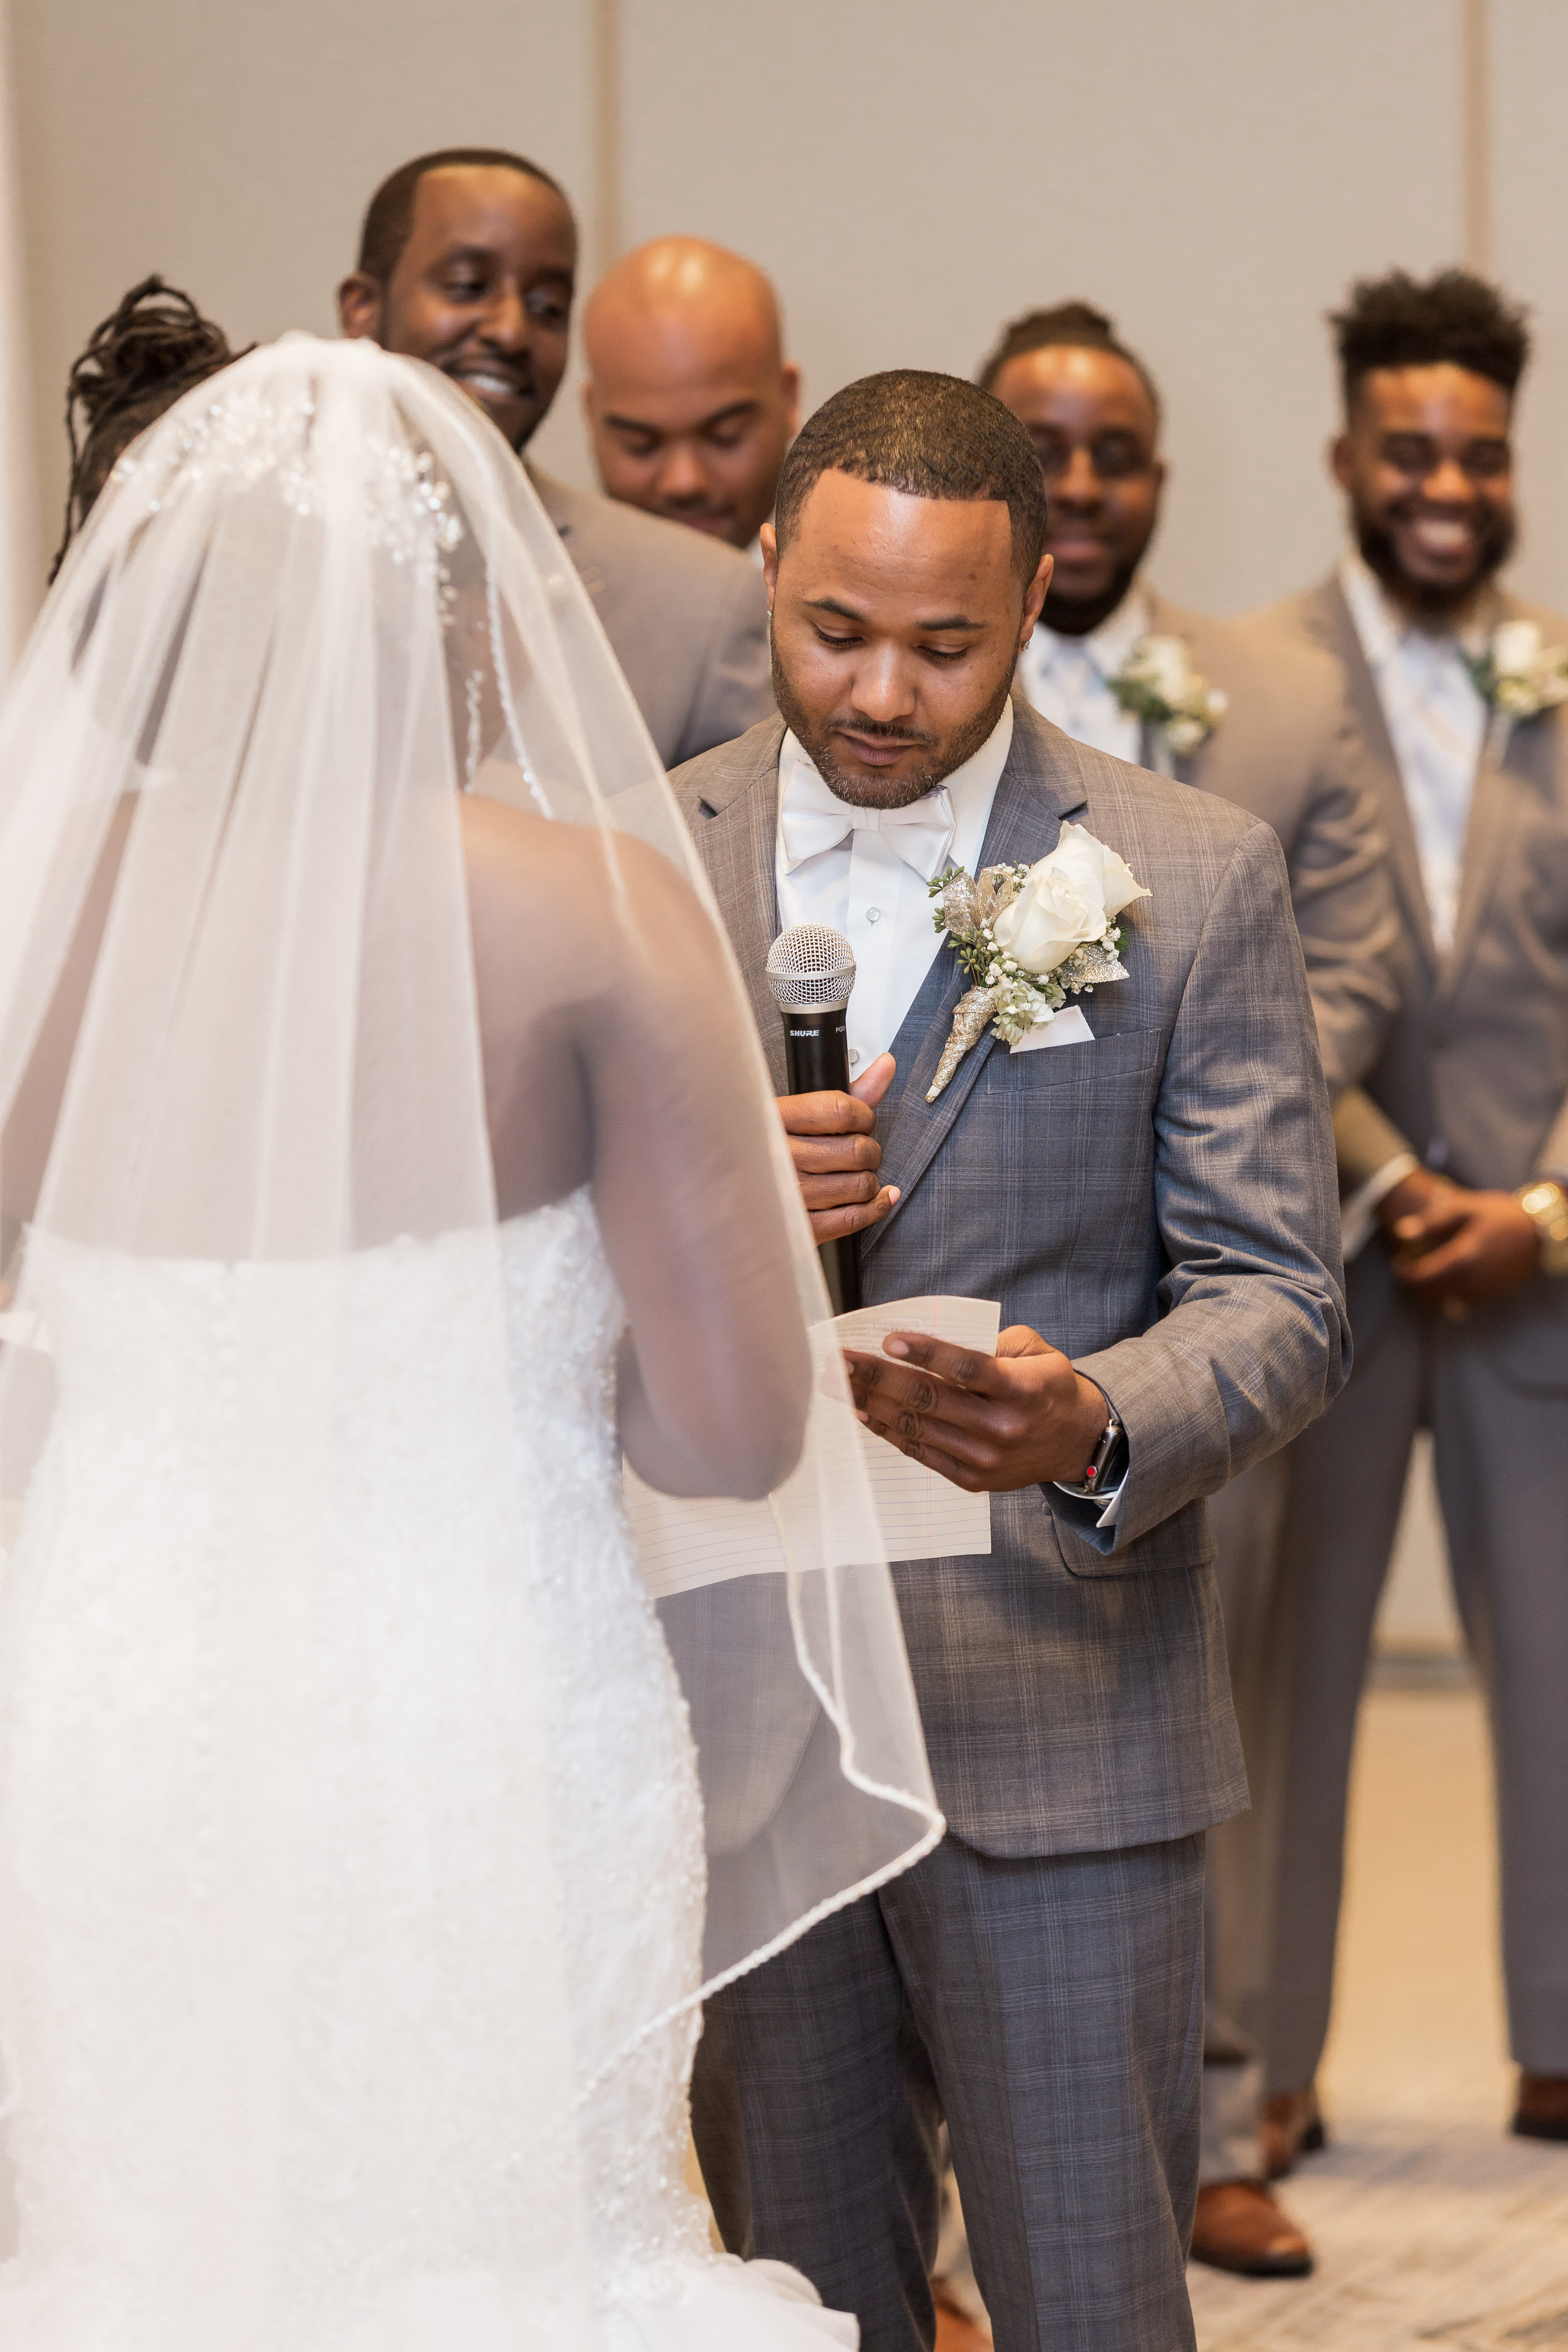 The groom reciting his hand-written vows to his bride during the wedding ceremony at the Hilton Main in Norfolk, Virginia.